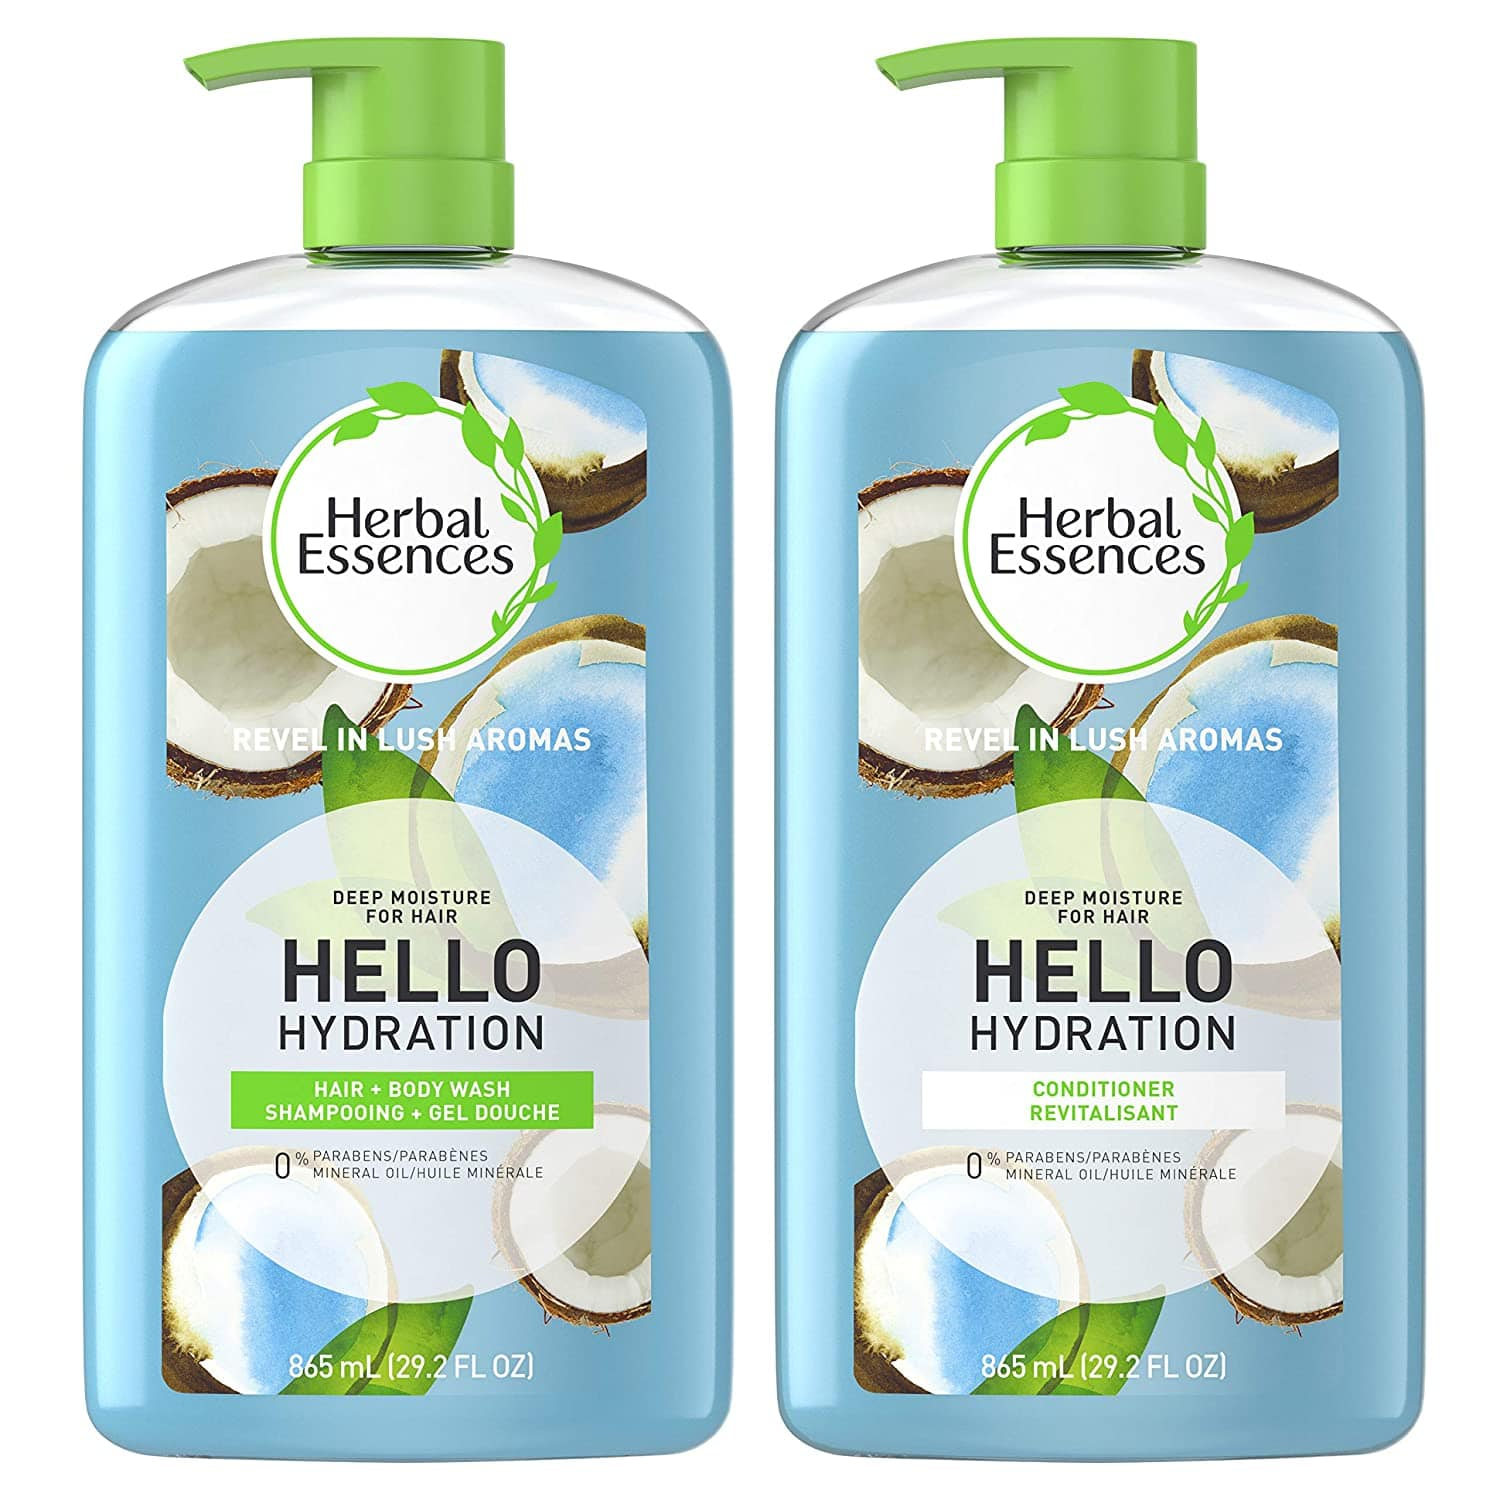 Amazon: Herbal Essences, Shampoo & Body Wash + Conditioner, Paraben Free, Hello Hydration Moisturizing, 29.2 fl oz, Kit for $12.45 & MORE